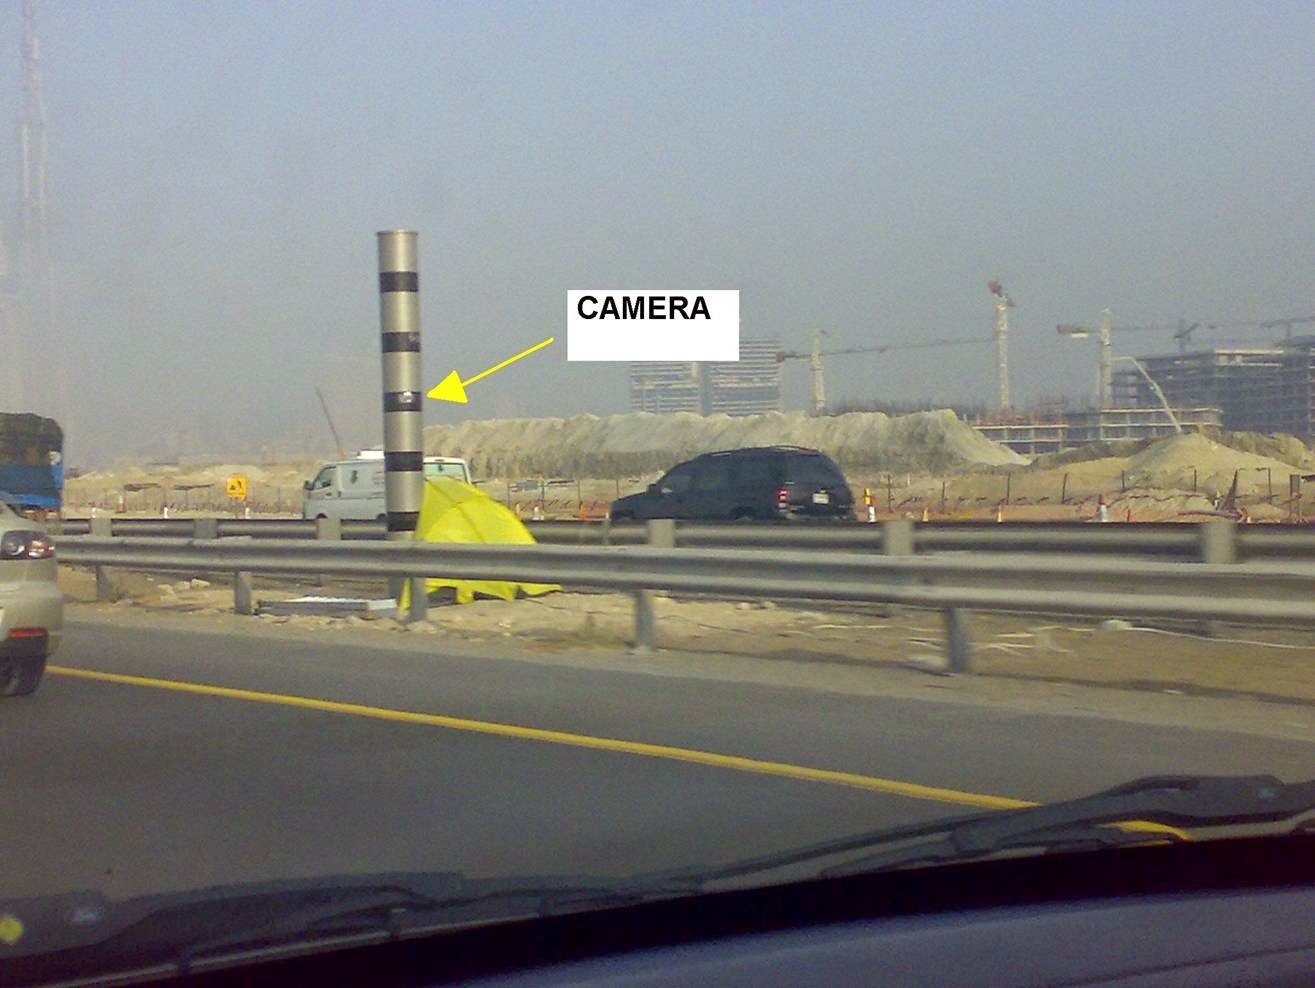 NEW SAHER CAMERAS INSTALLED IN SAUDI ARABIA TO STRICTLY